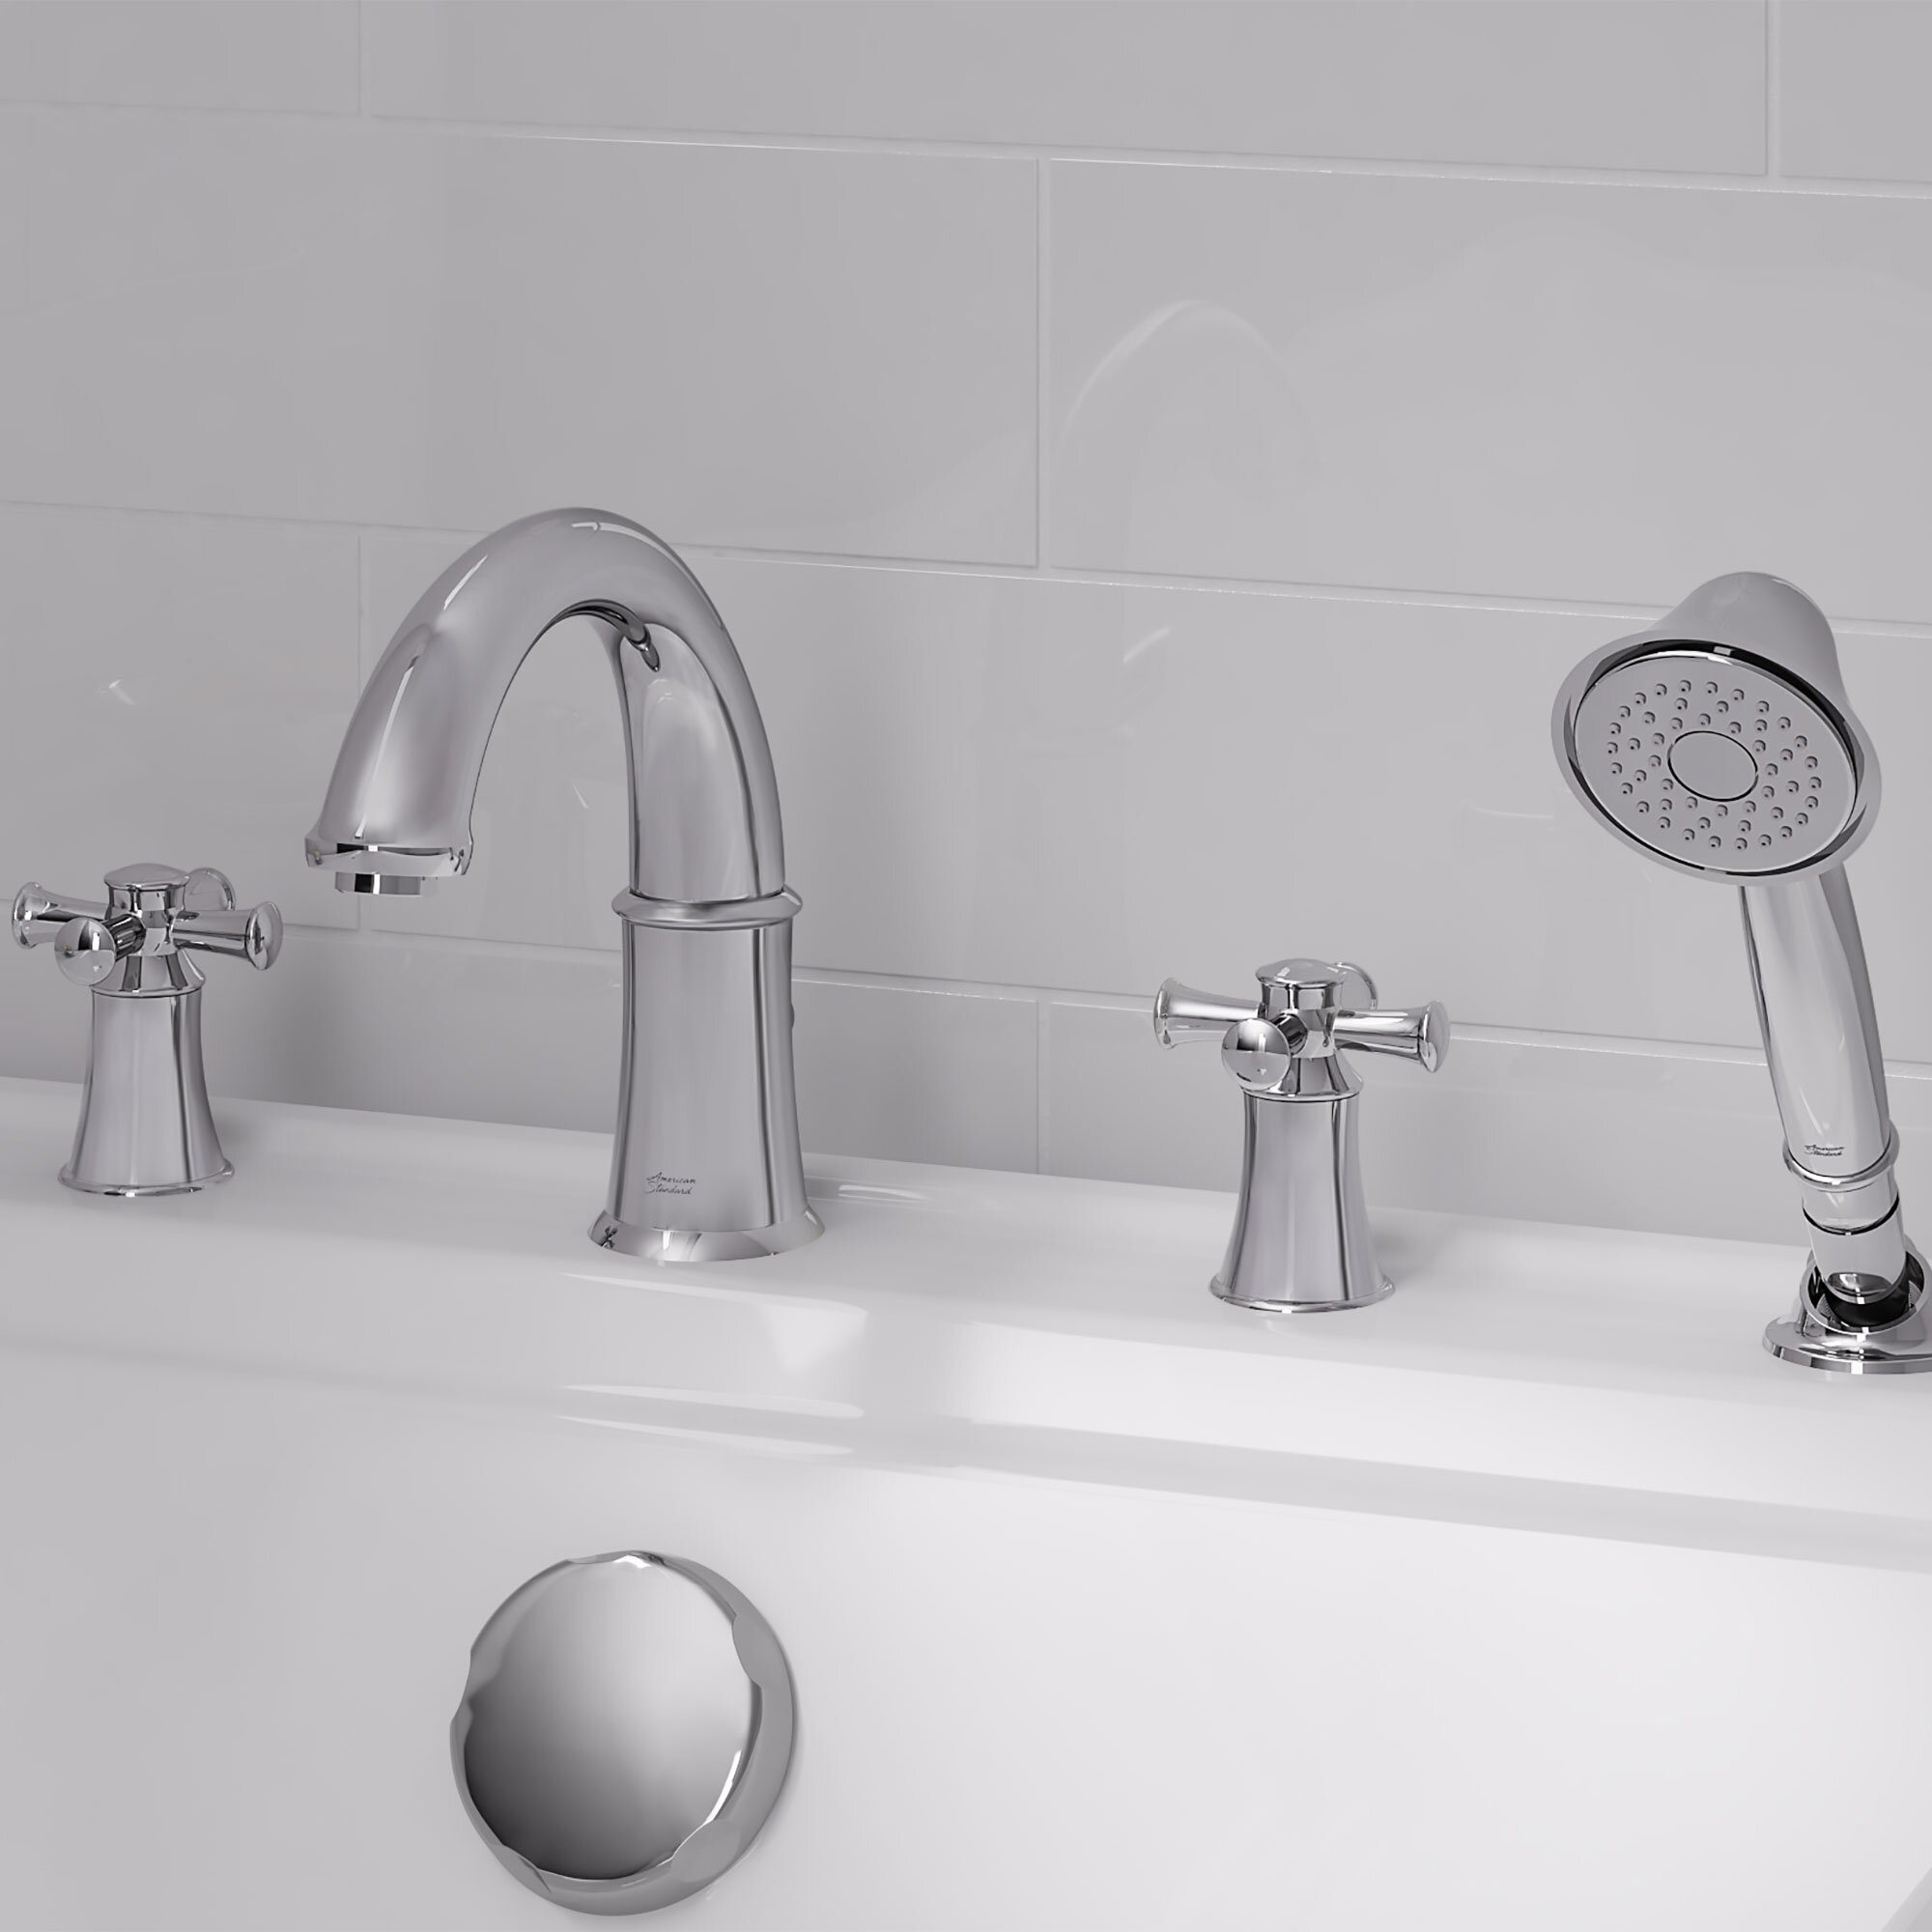 American Standard Portsmouth Double Handle Deck Mounted Roman Tub Faucet Trim With Diverter And Handshower Wayfair